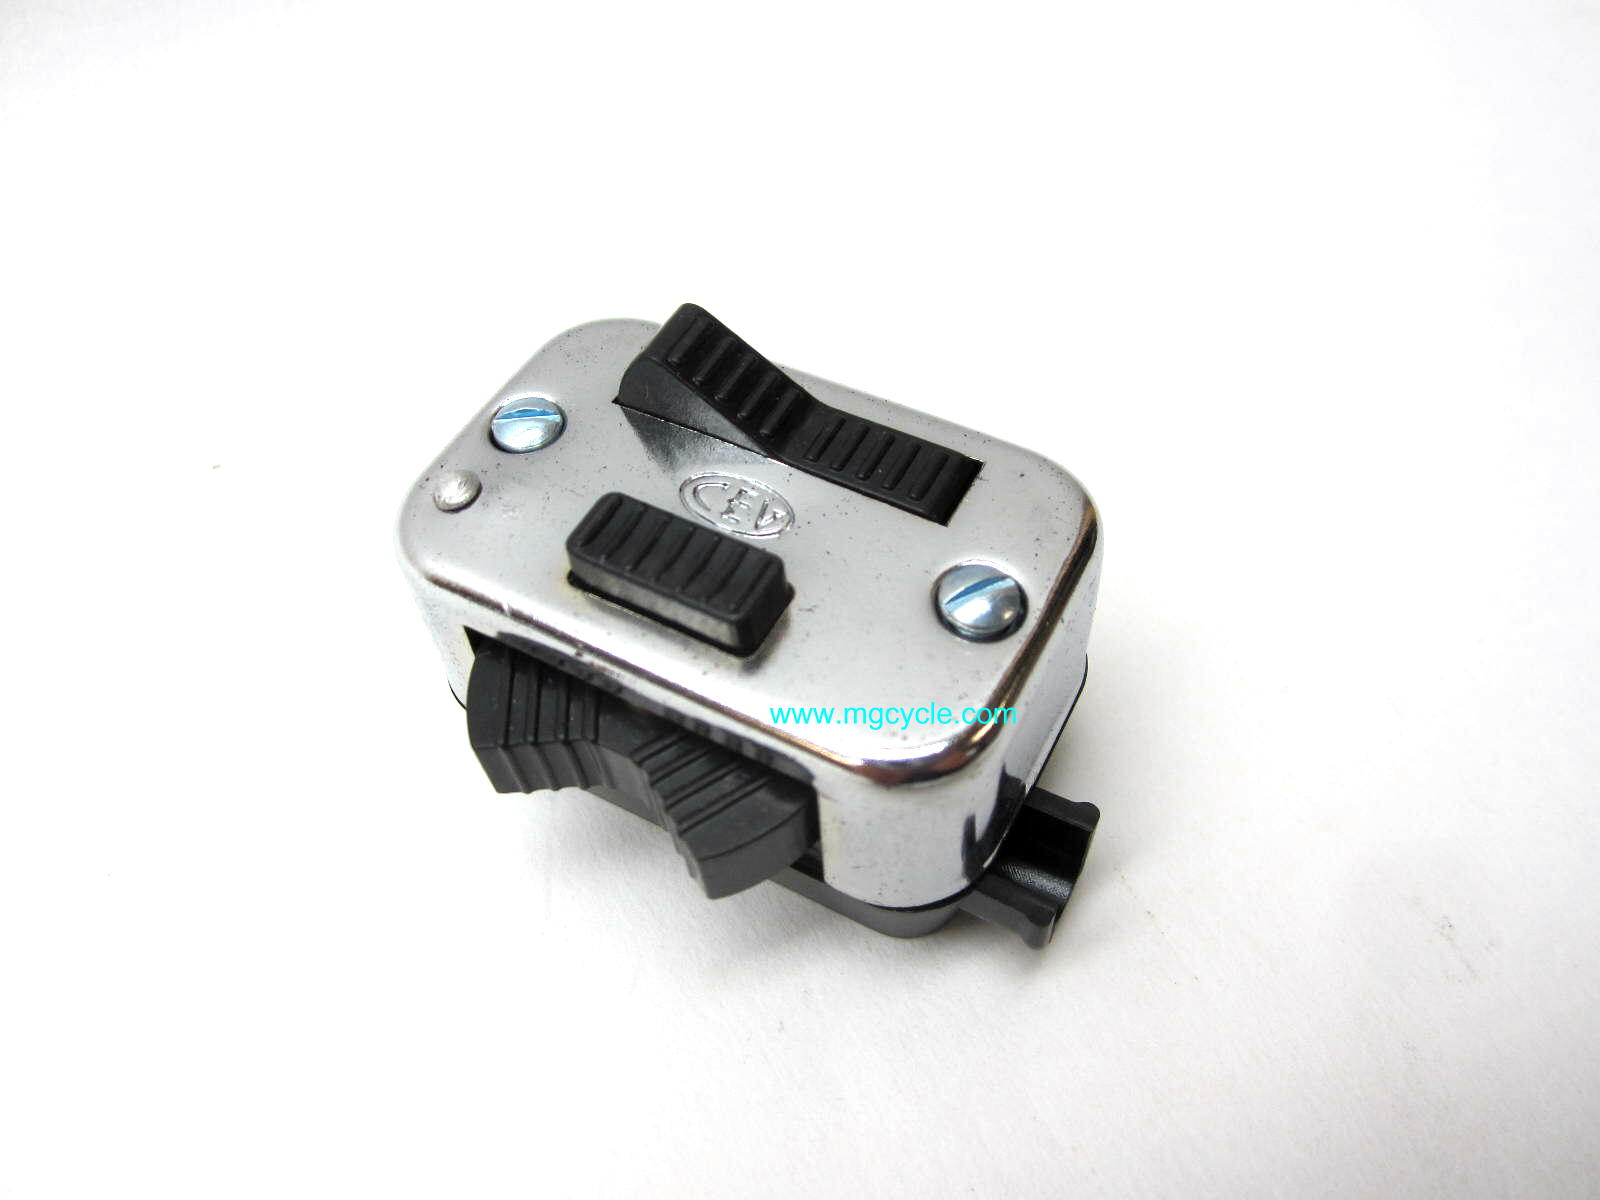 Headlight switch for V700 Ambassador Eldorado 850GT V7 Sport